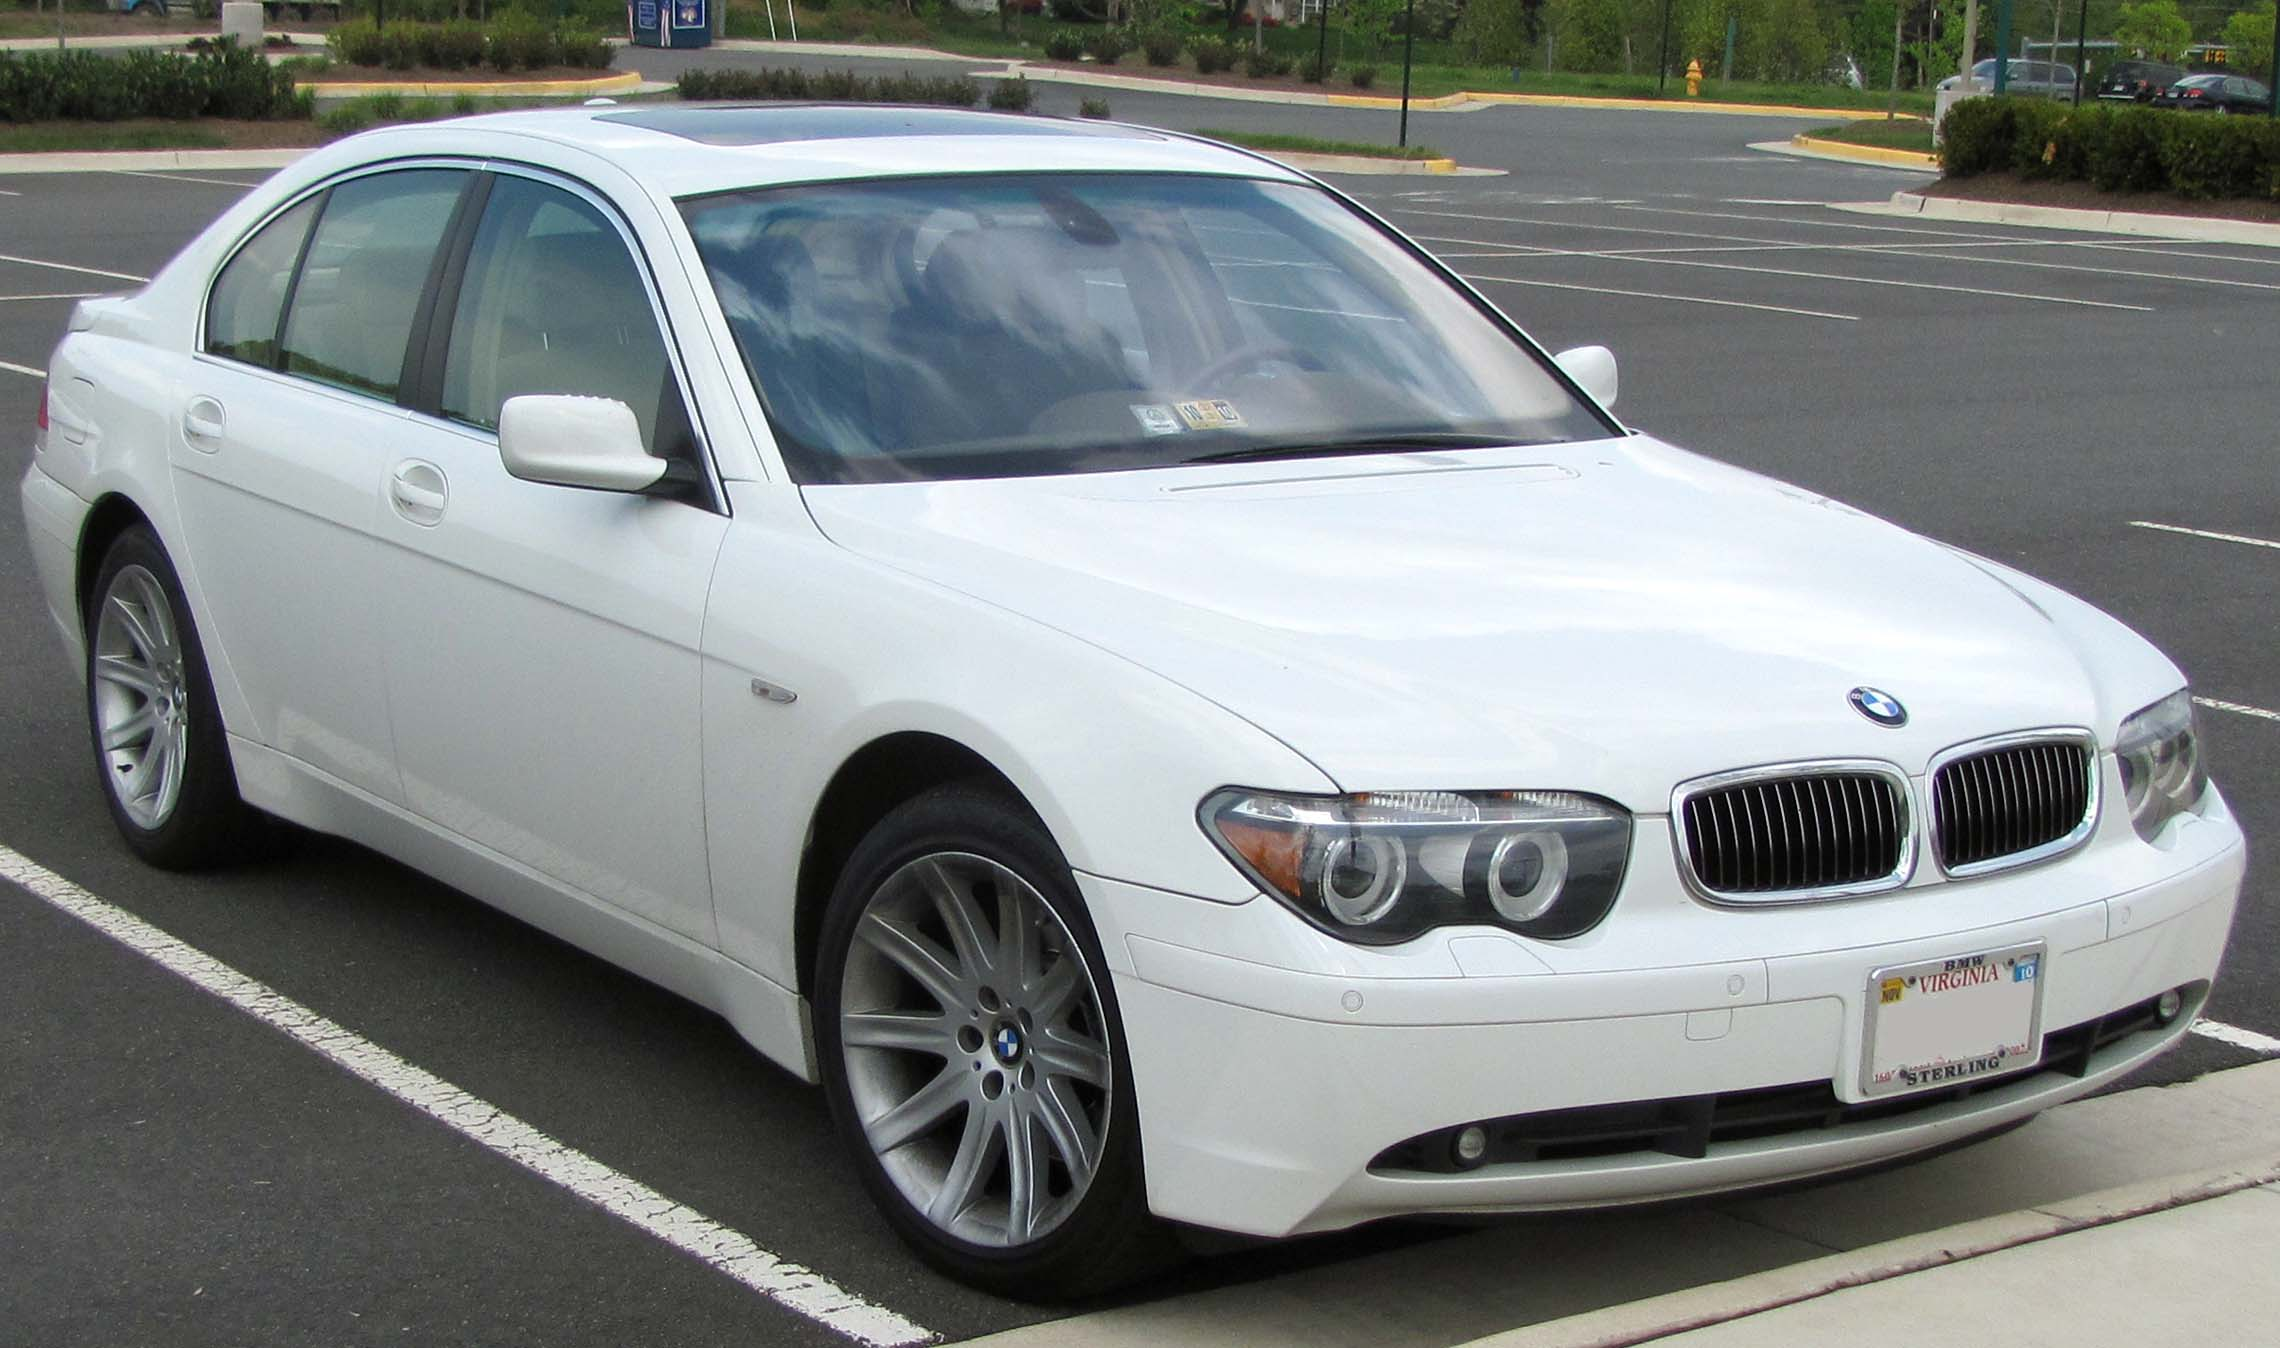 file:bmw 745i 2 -- 04-22-2010 - wikimedia commons